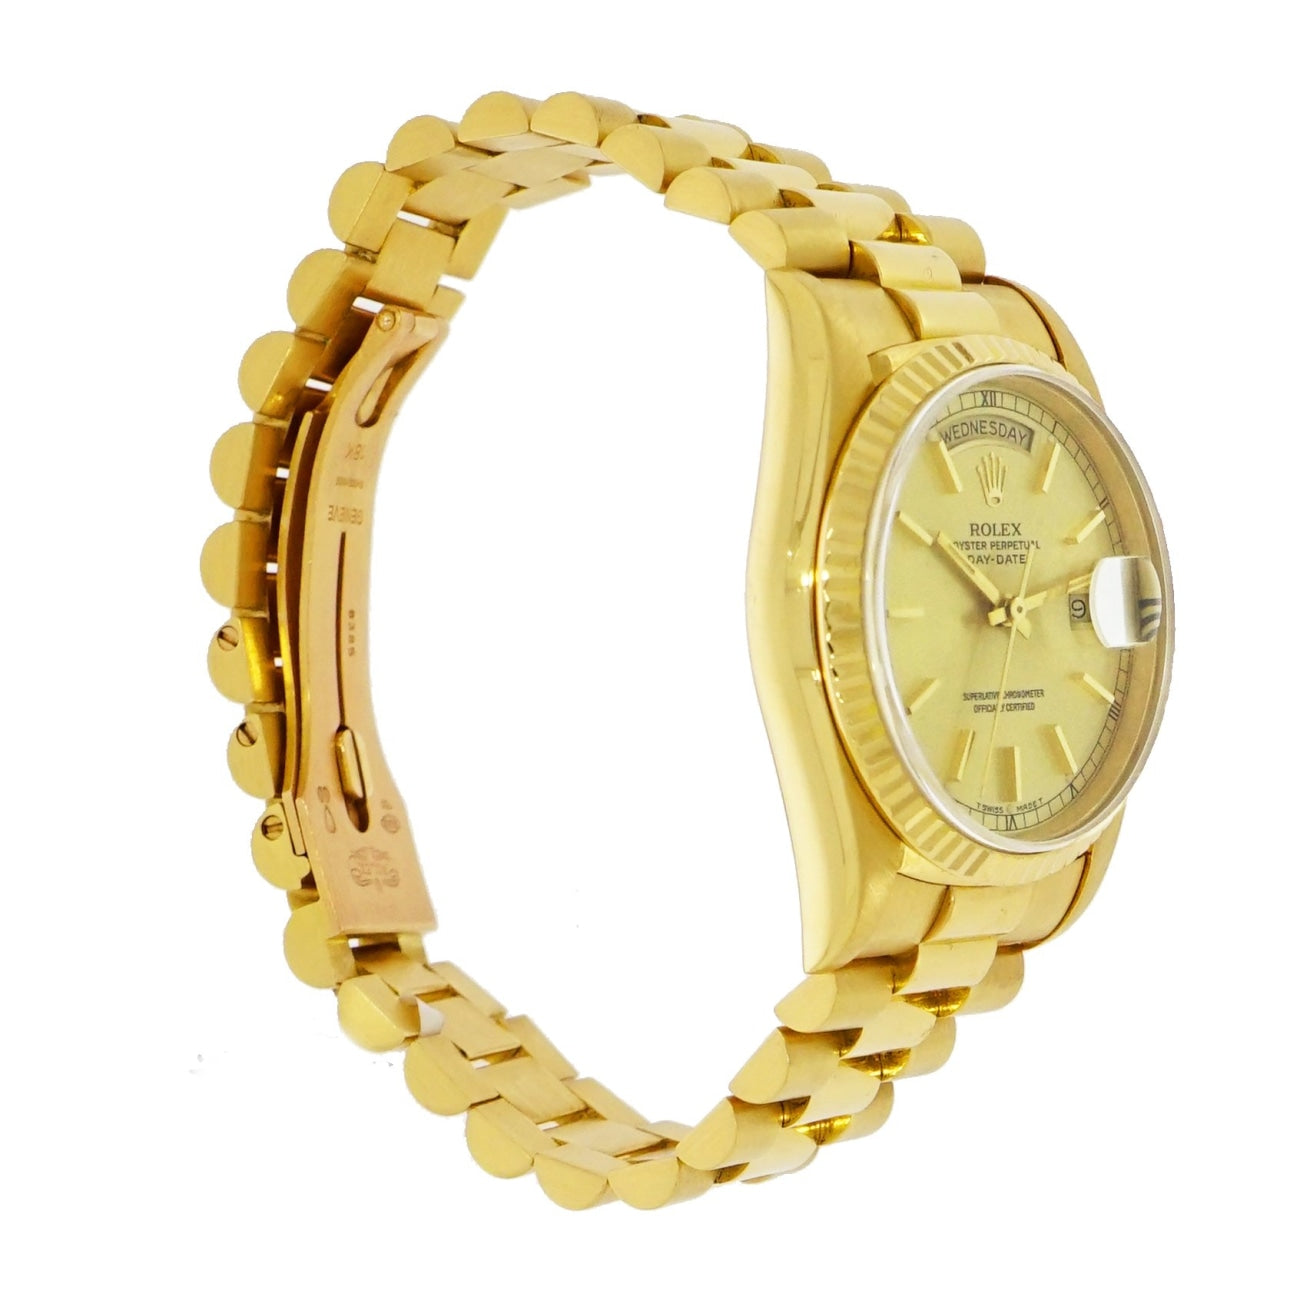 Pre-Owned Rolex Watches - Excellent Vintage Day-Date 36 mm in 18 karat yellow gold | Manfredi Jewels